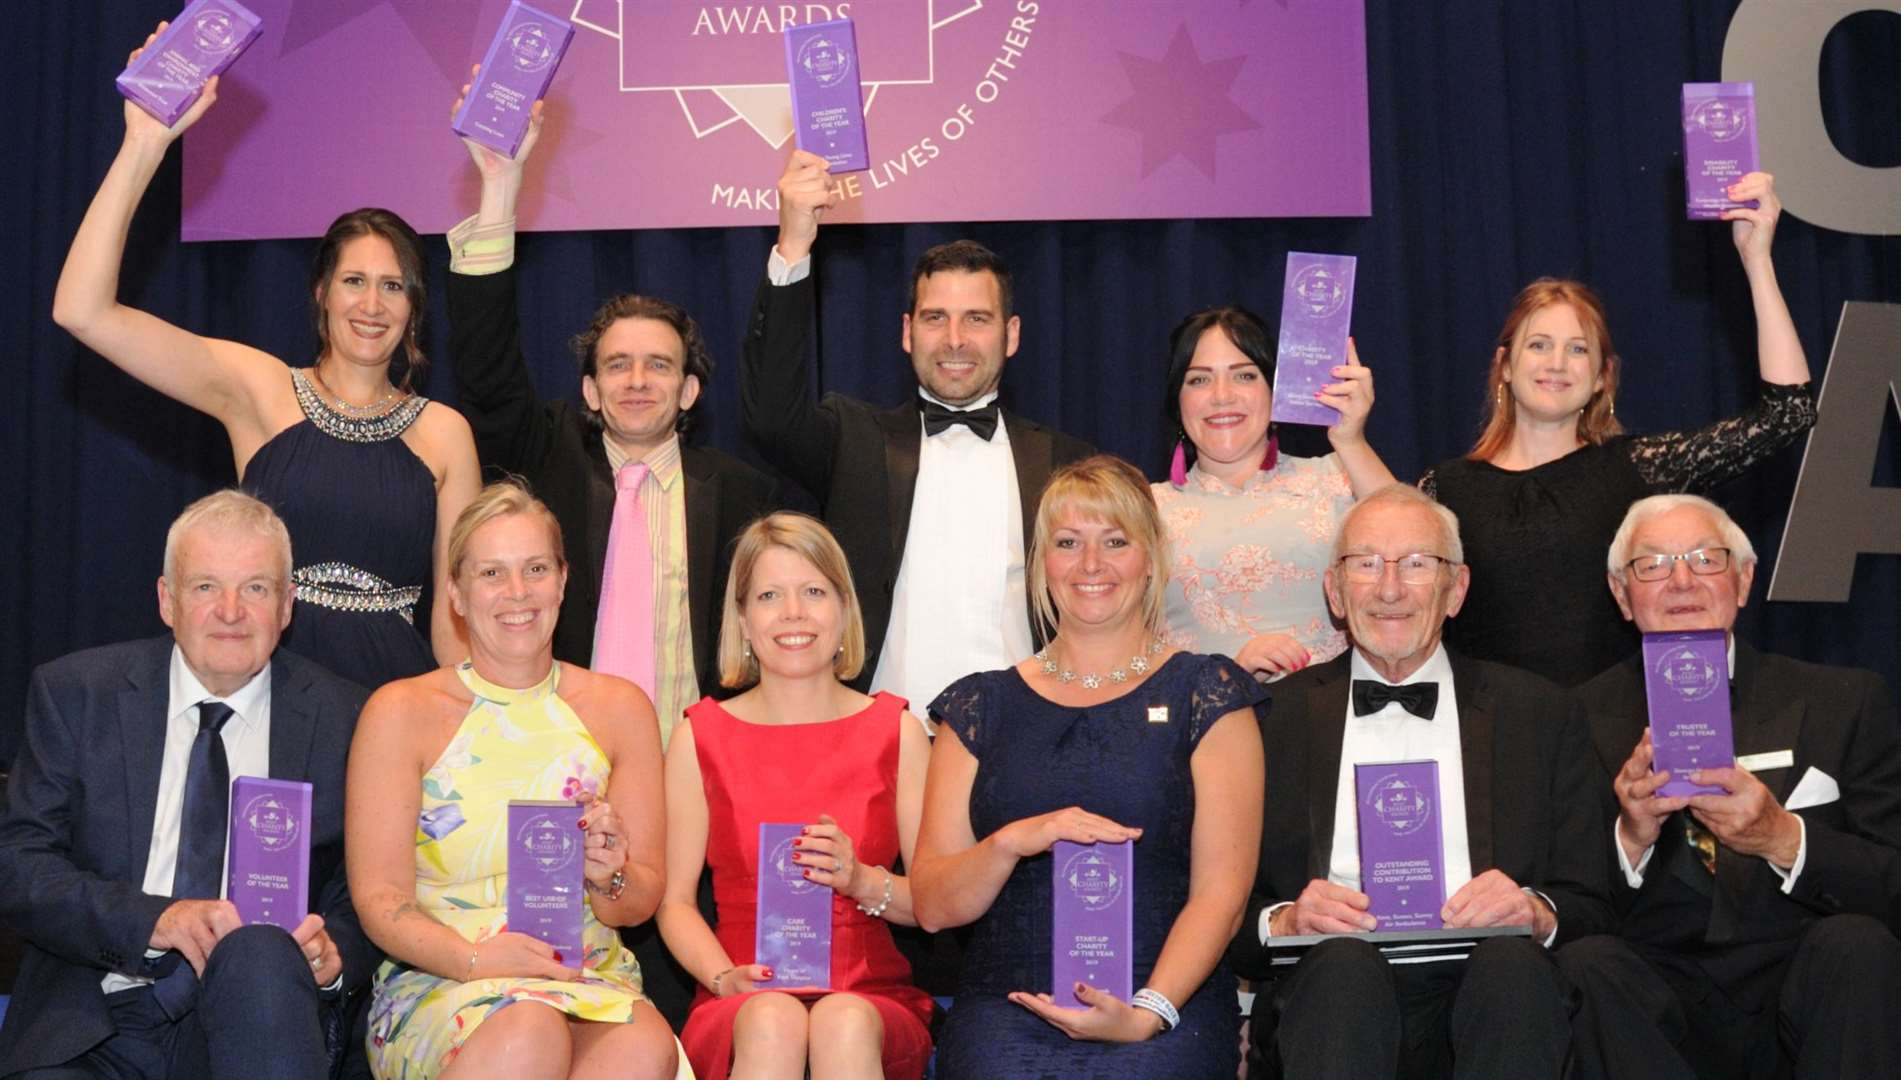 Last year's winners at the gala evening for finalists. Picture: Simon Hildrew